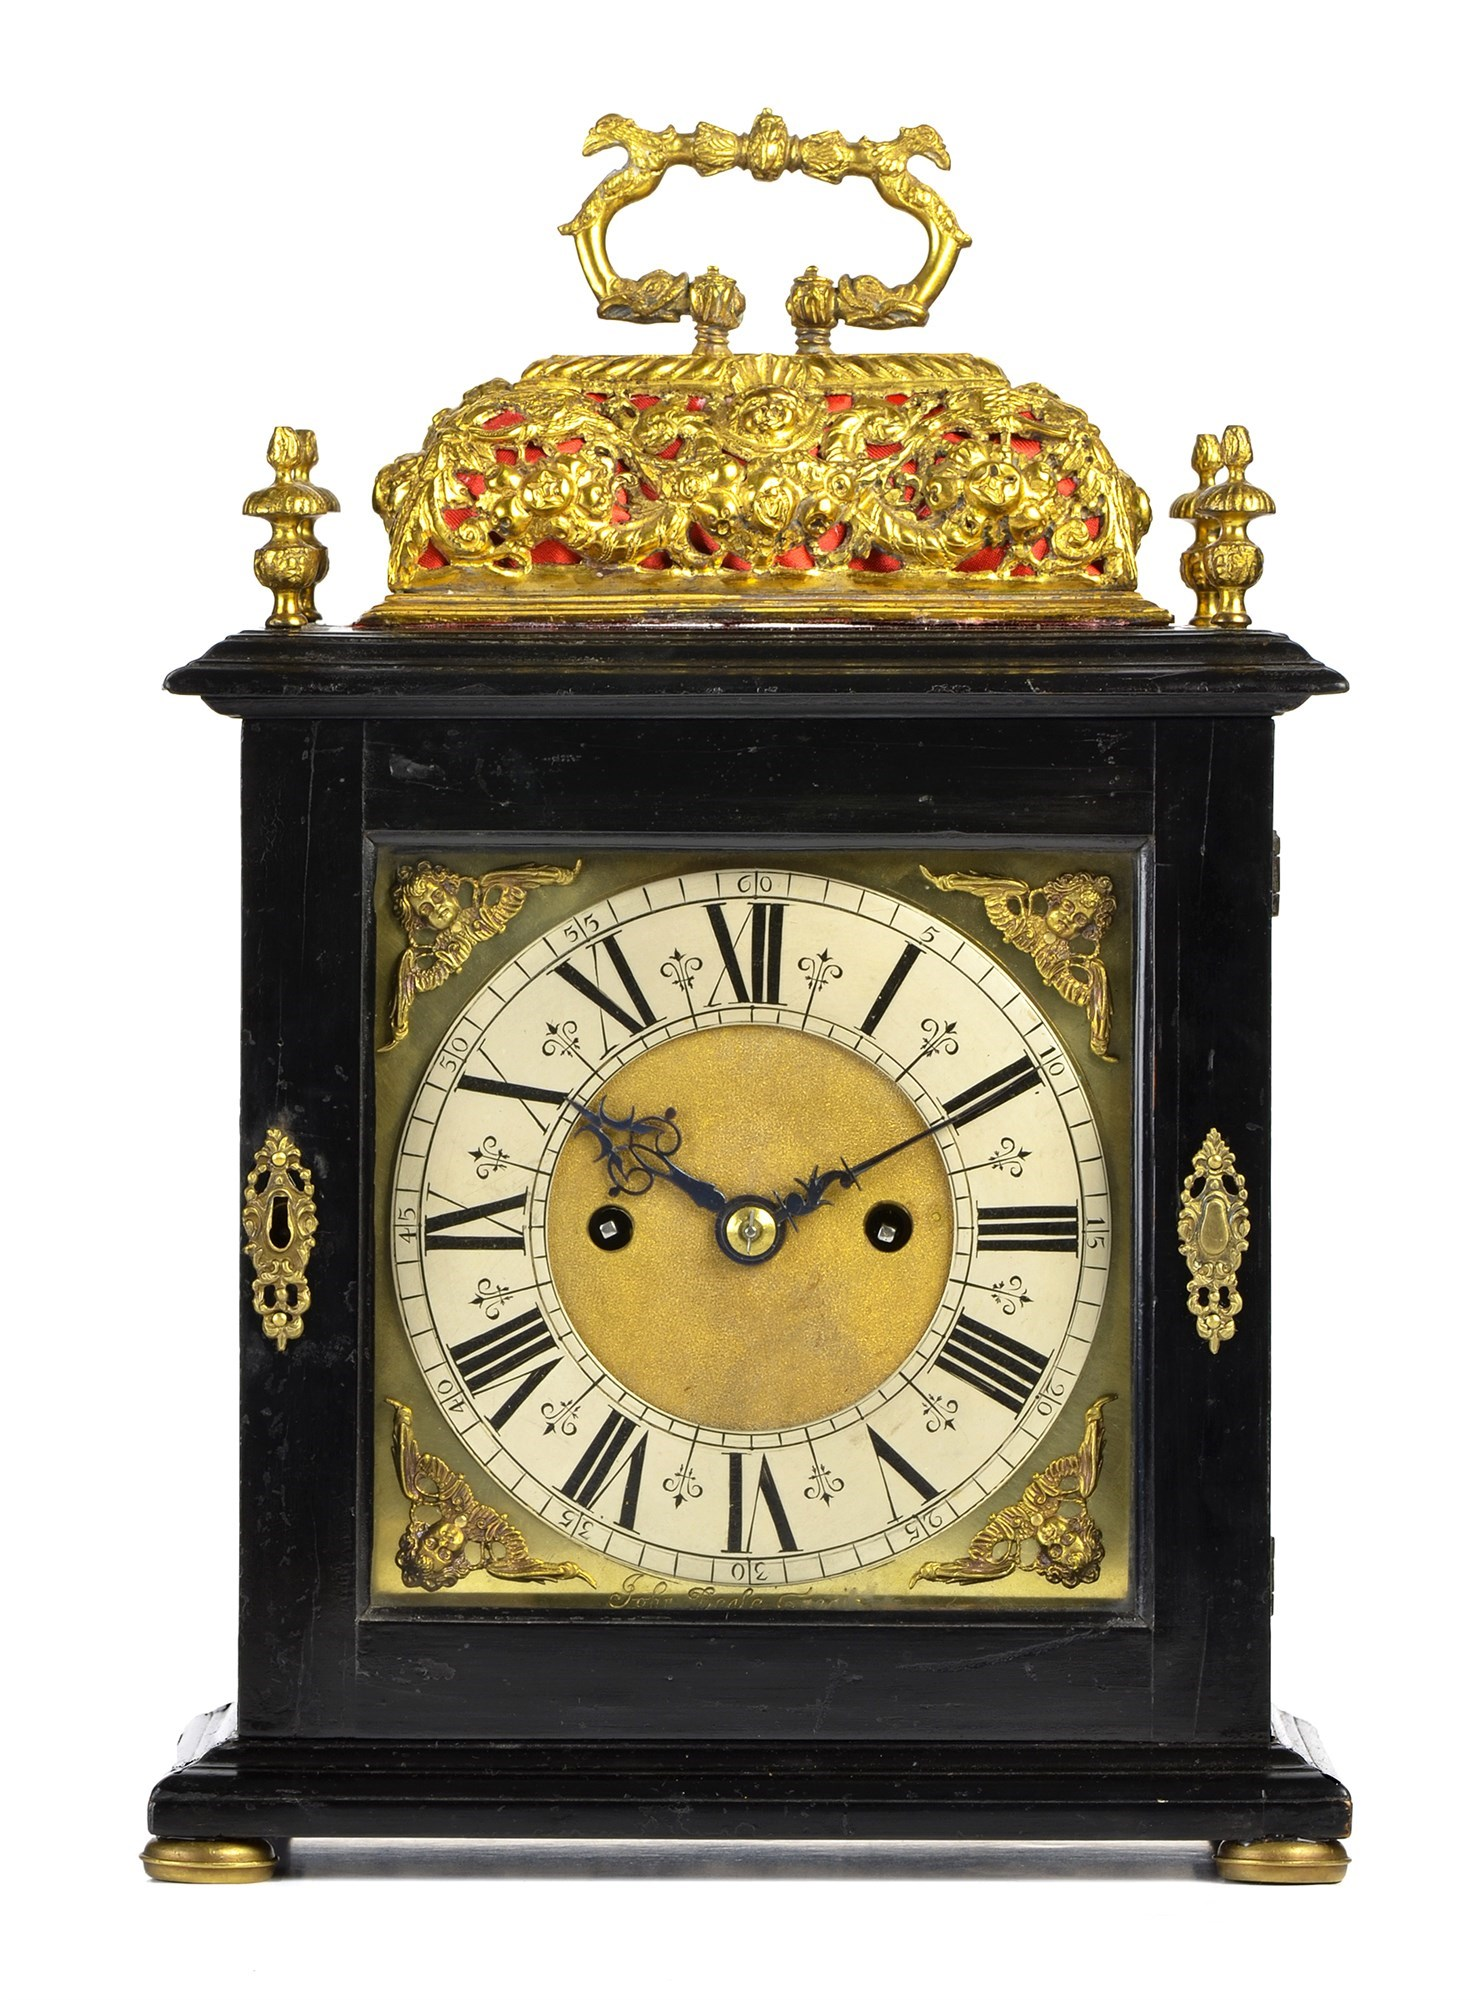 A late 17th Century basket-top bracket clock, John Beale, London, the case with dolphin handle over a repousse basket